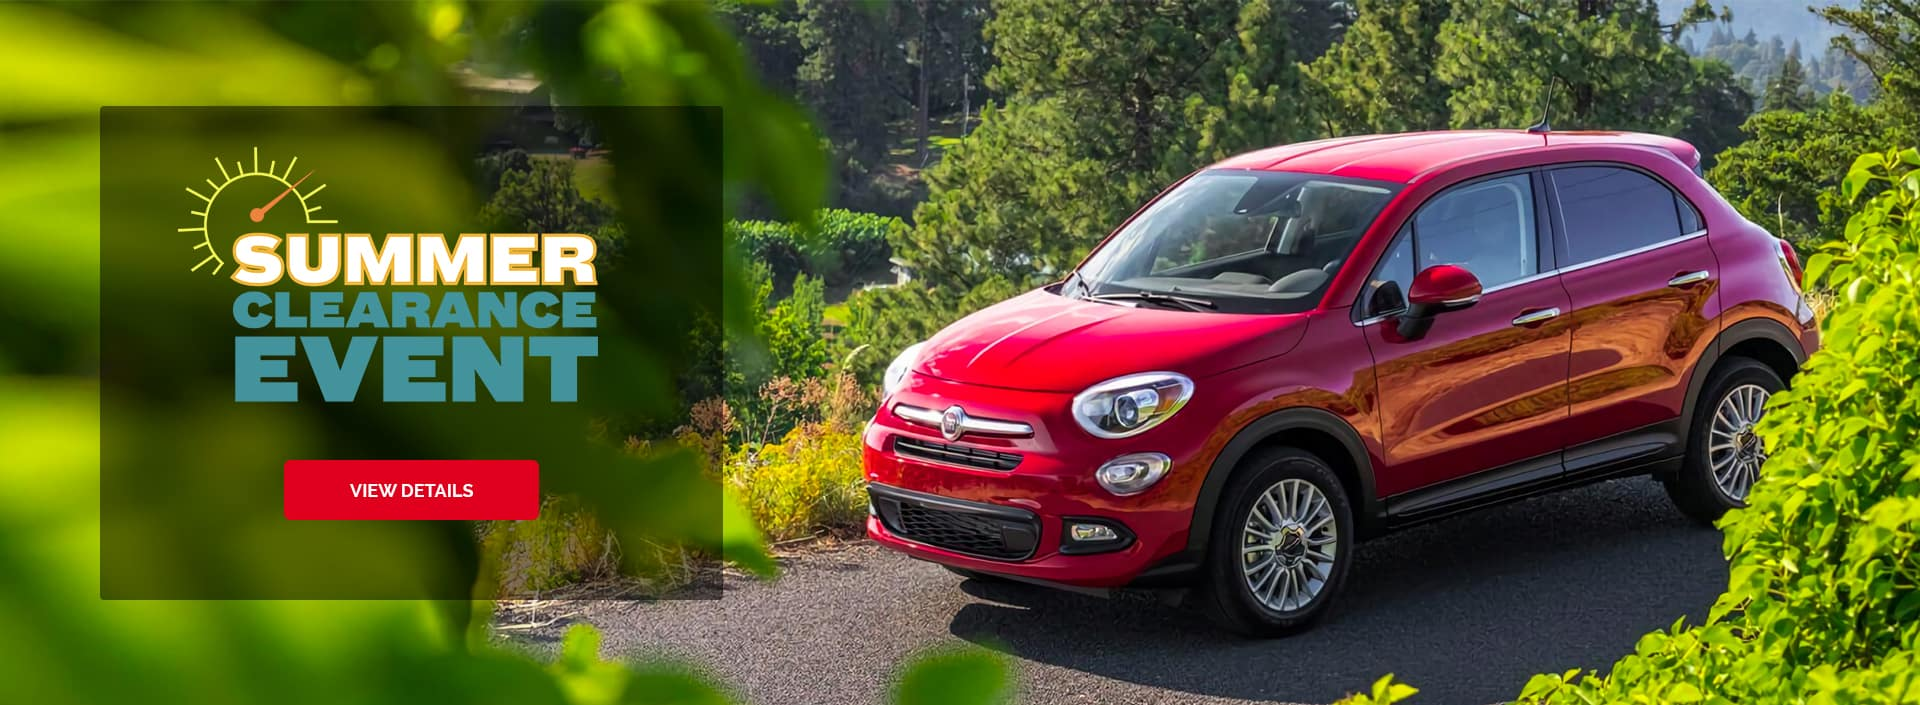 Summer Sales Event Banner with a Red FIAT Surrounded by greenery